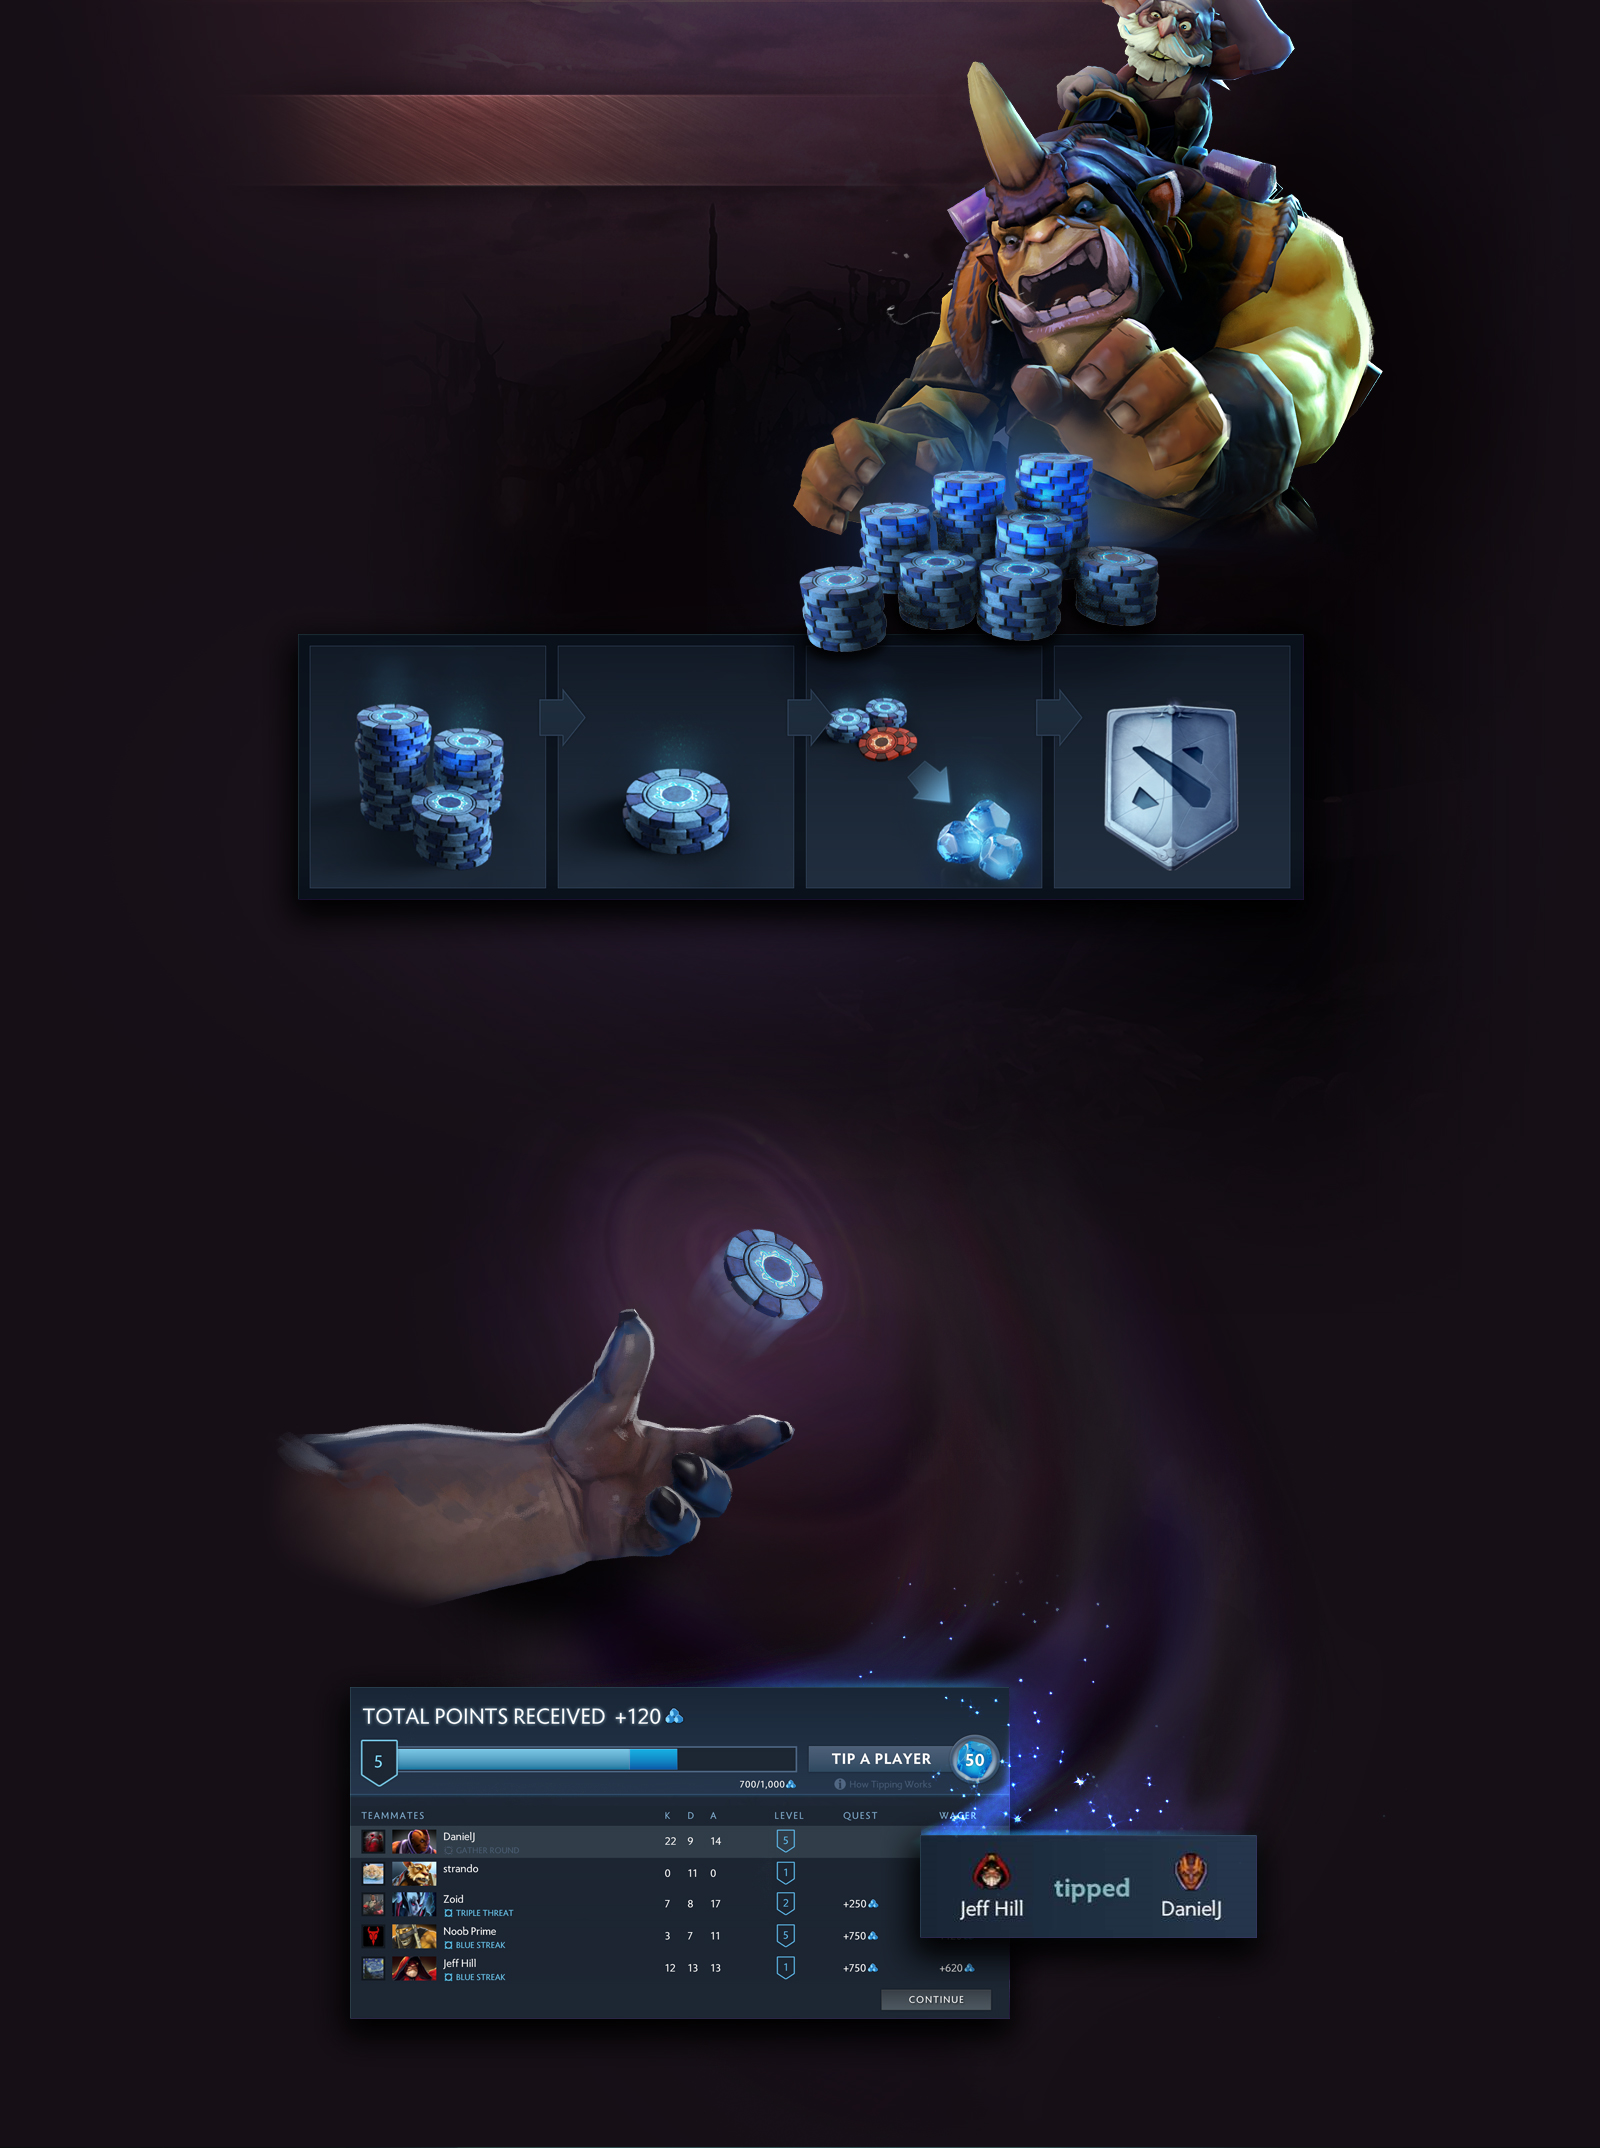 Lions unexisting left hand or just Abyssal Underlord : DotA2 Dota 2 Abyssal Underlord